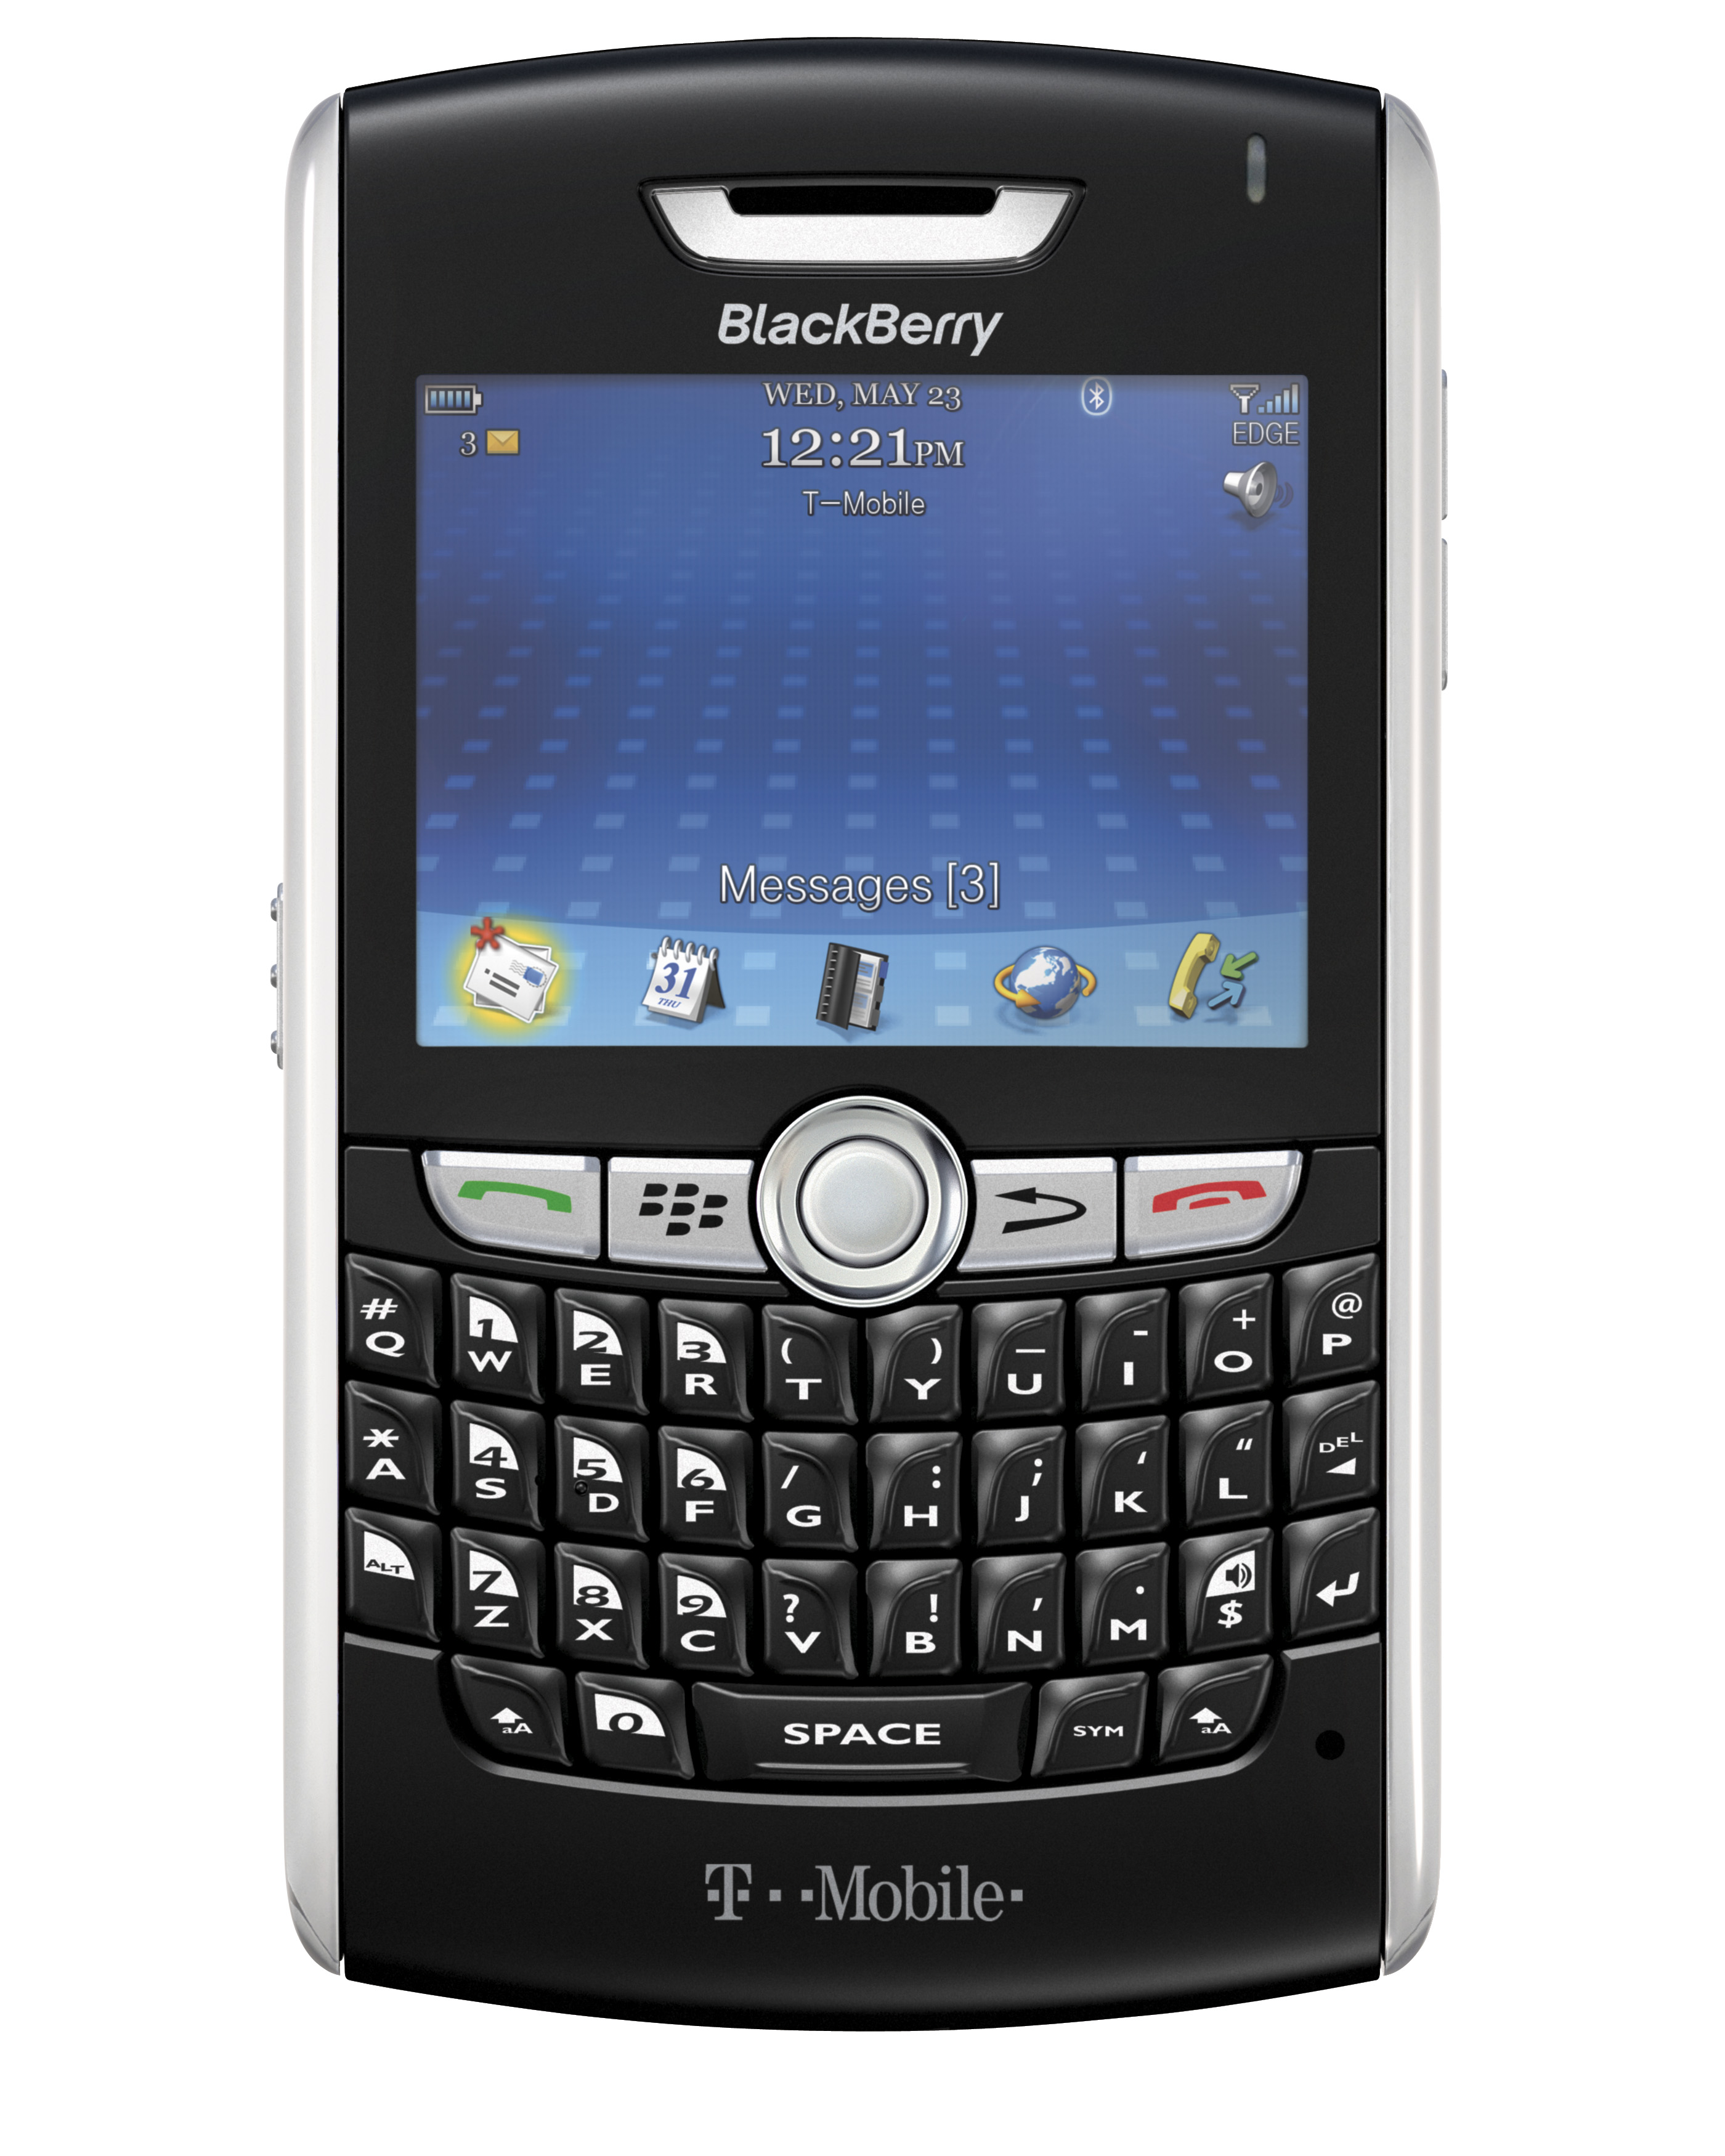 Blackberry 8800 (2) Actual Size Image